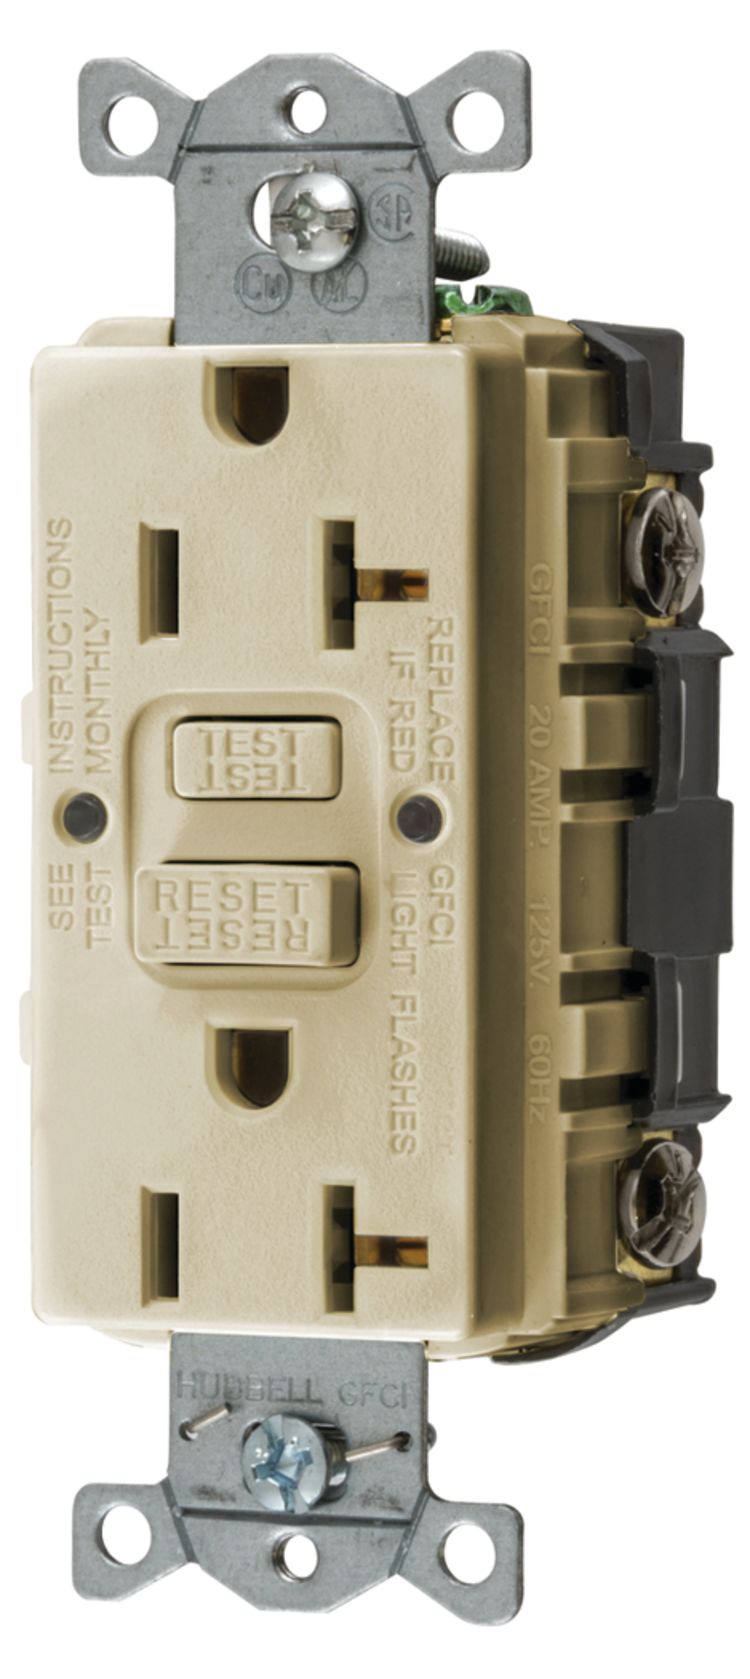 Hubbell Gfrst52mi Fisheries Supply Ground Fault Circuit Interruptor Interrupter Gfci Outlet